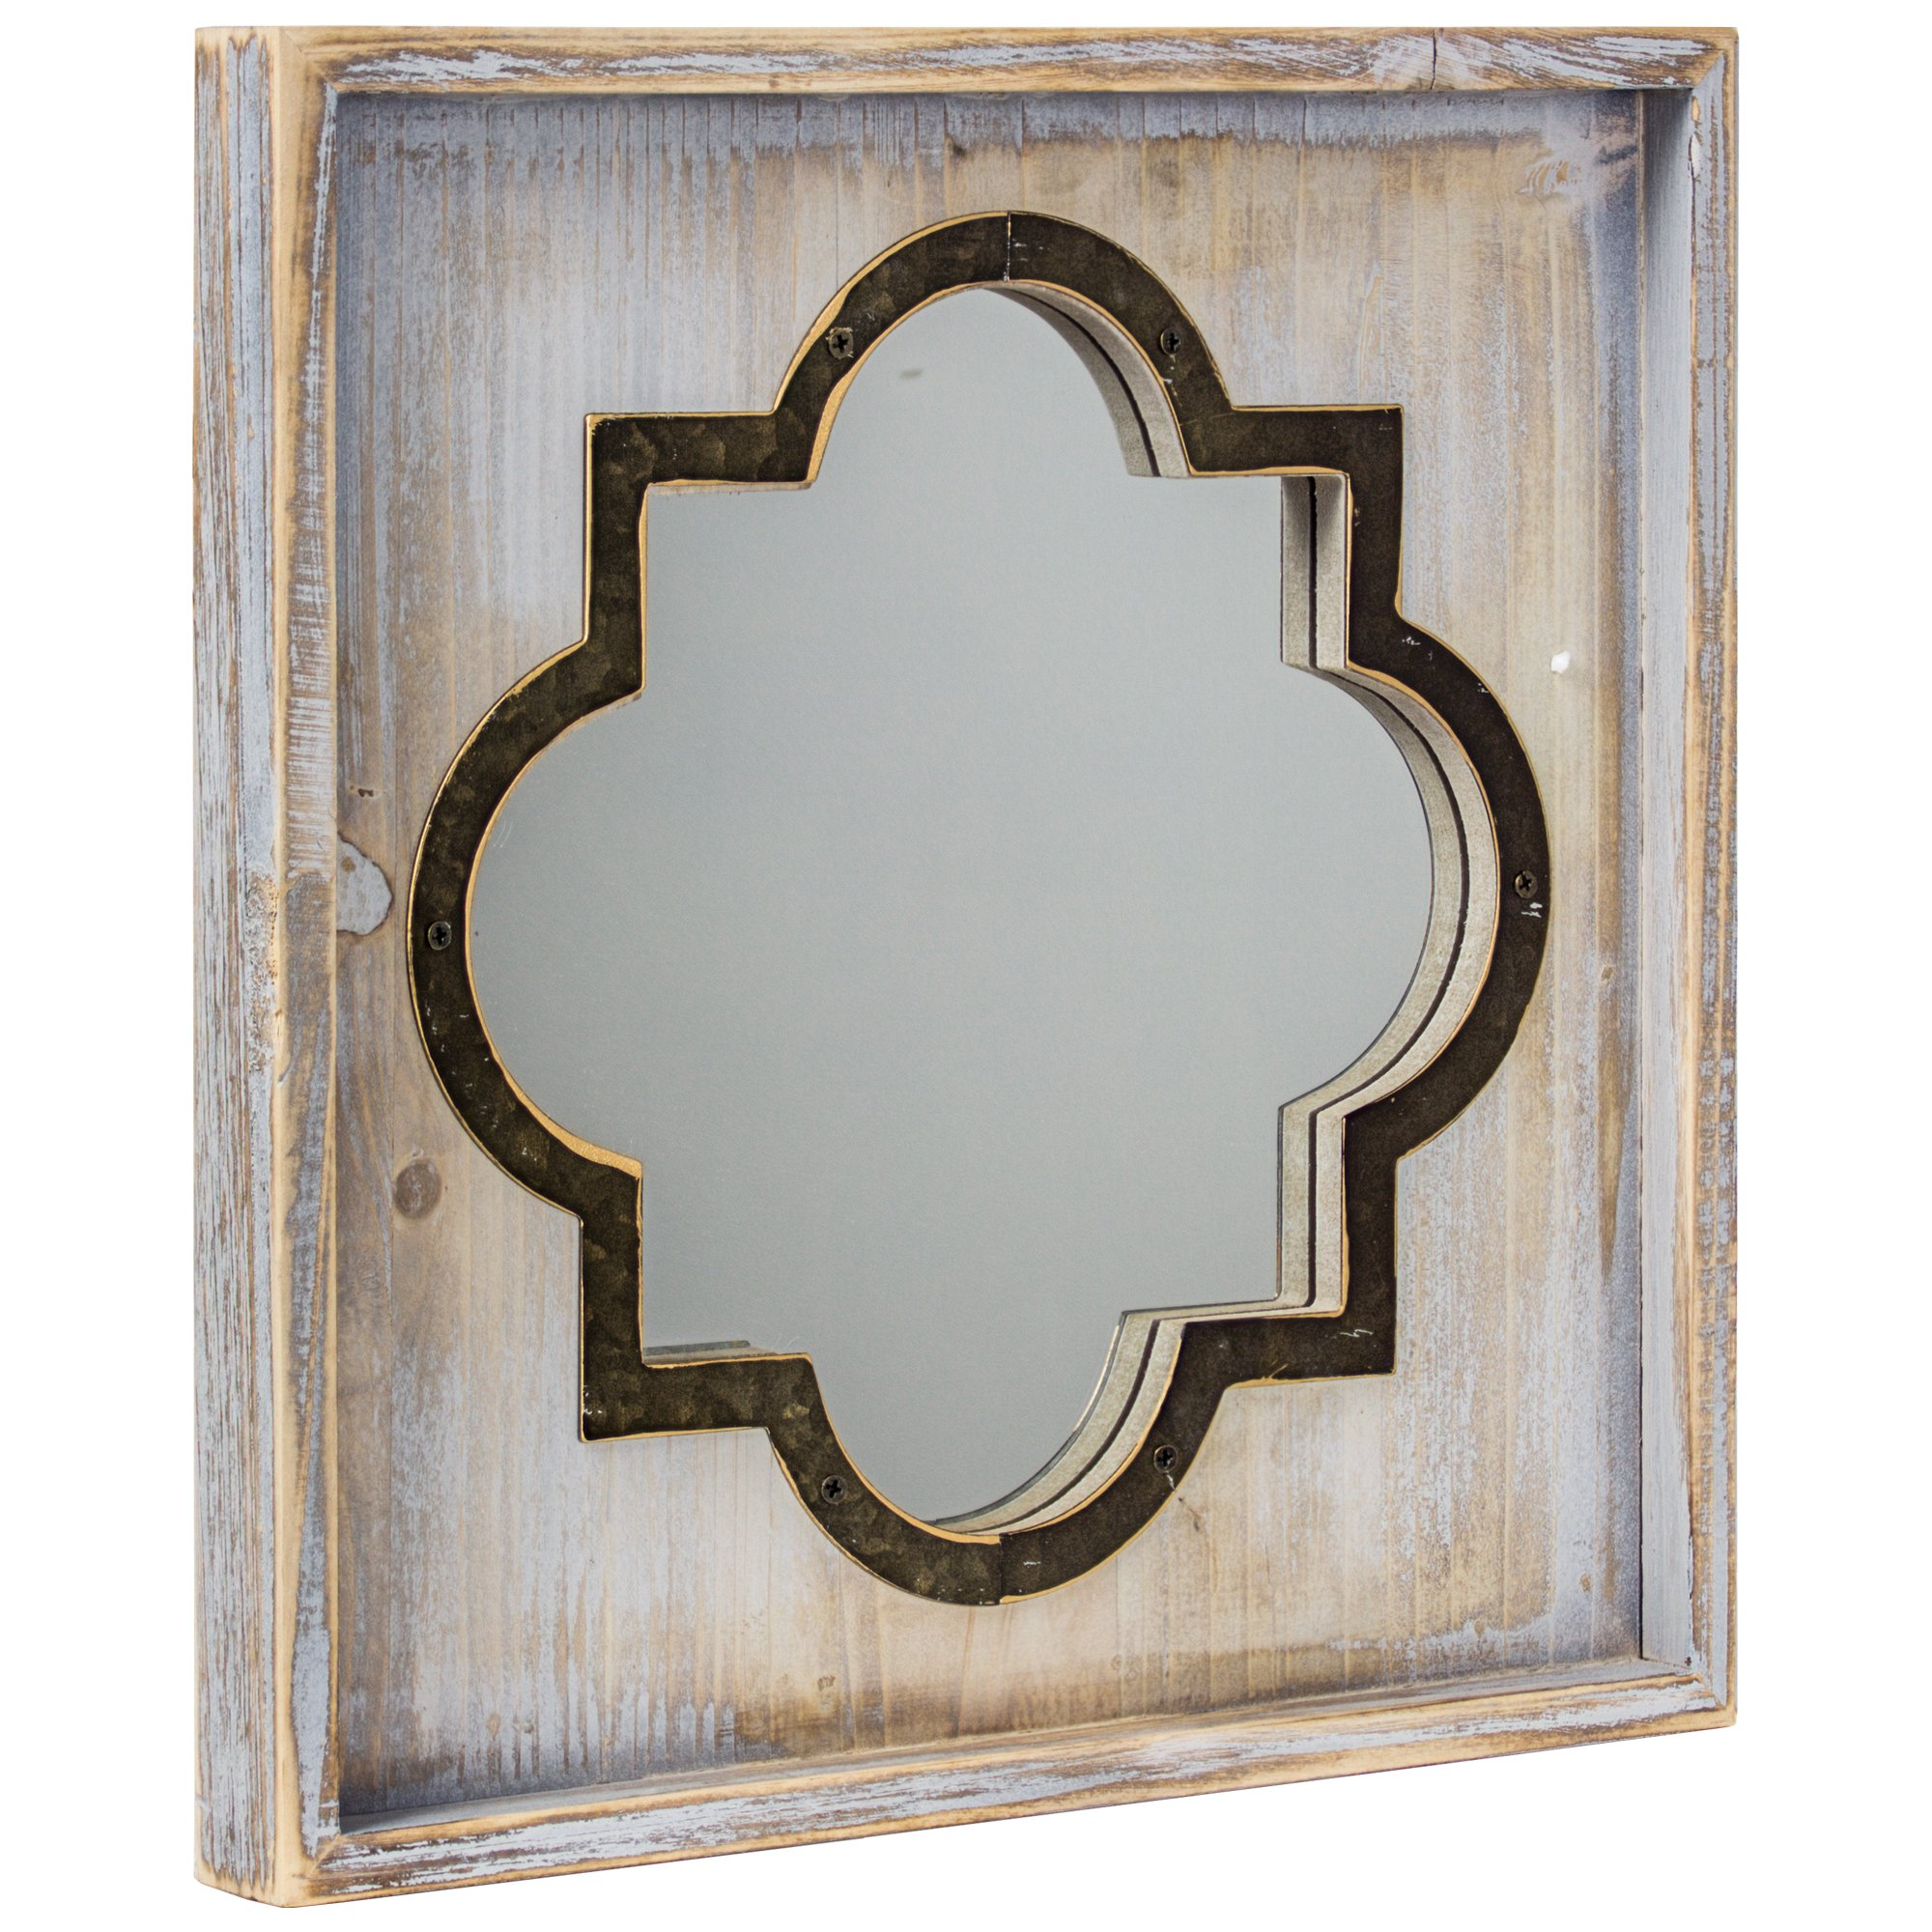 Crystal Art Whitewashed Rustic Wood & Metal Vanity Mirror (Square), Farmhouse Wall Décor, Multicolor